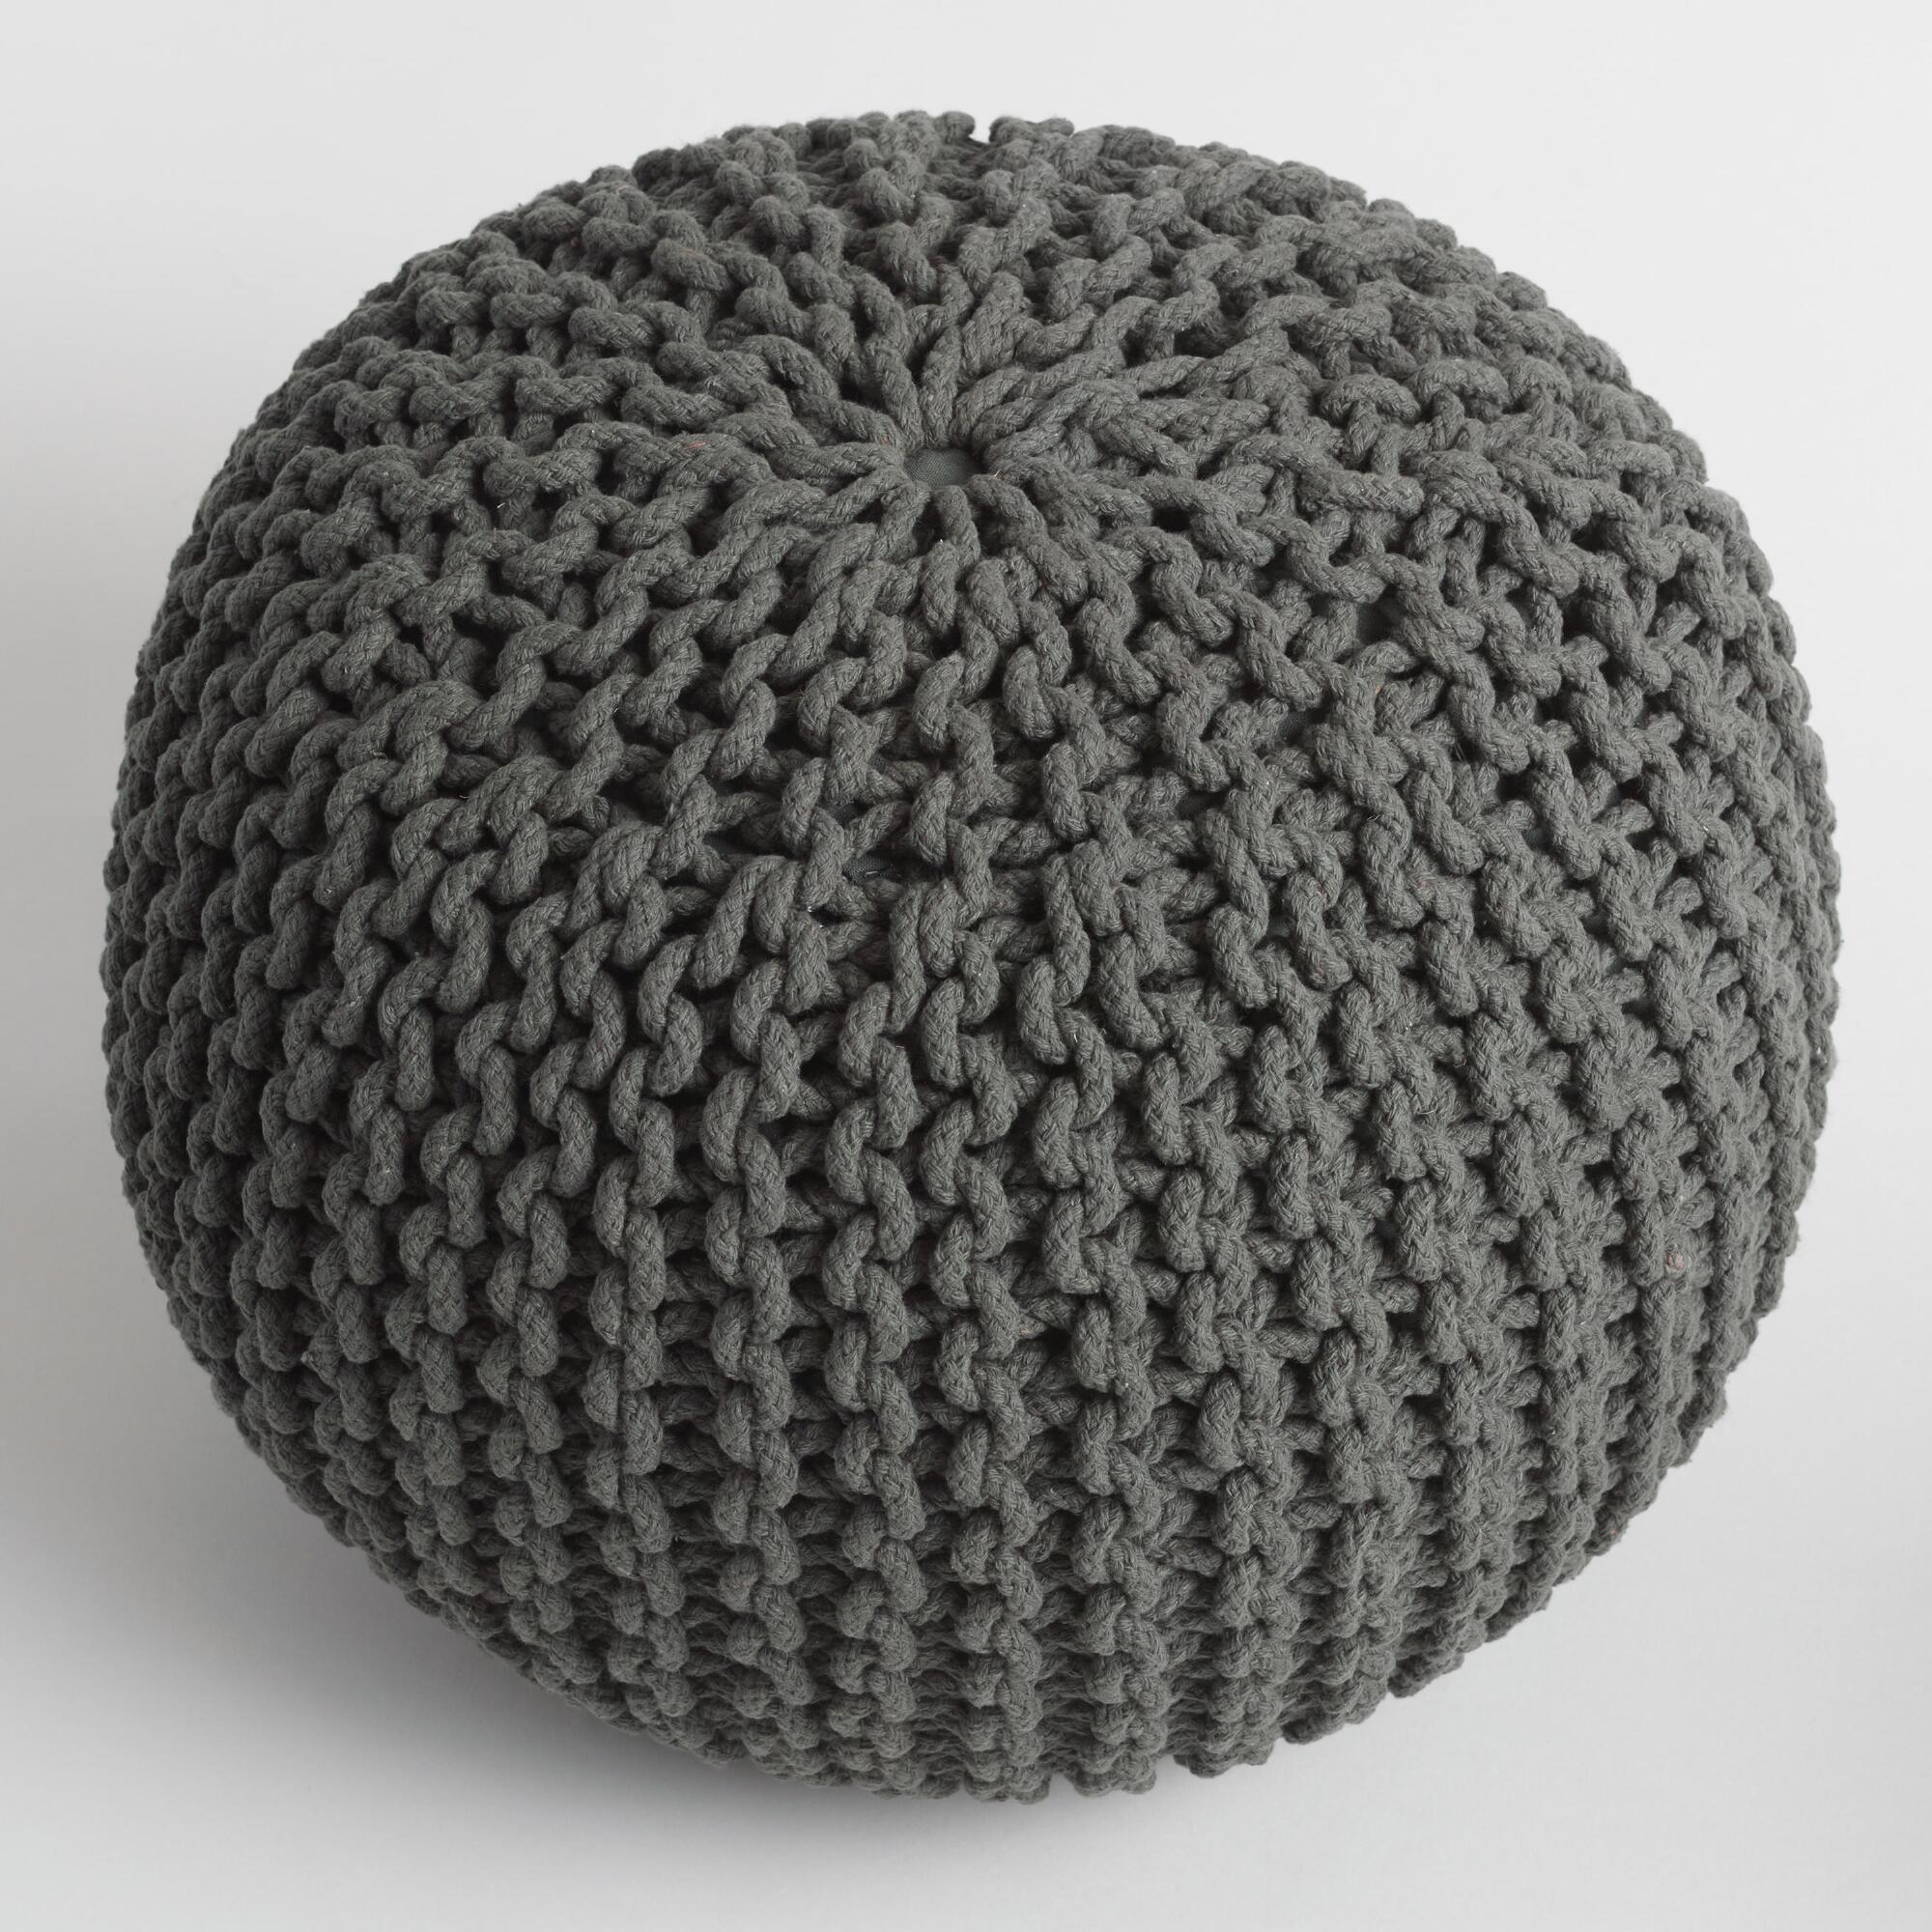 Charcoal Knitted Pouf | World Market